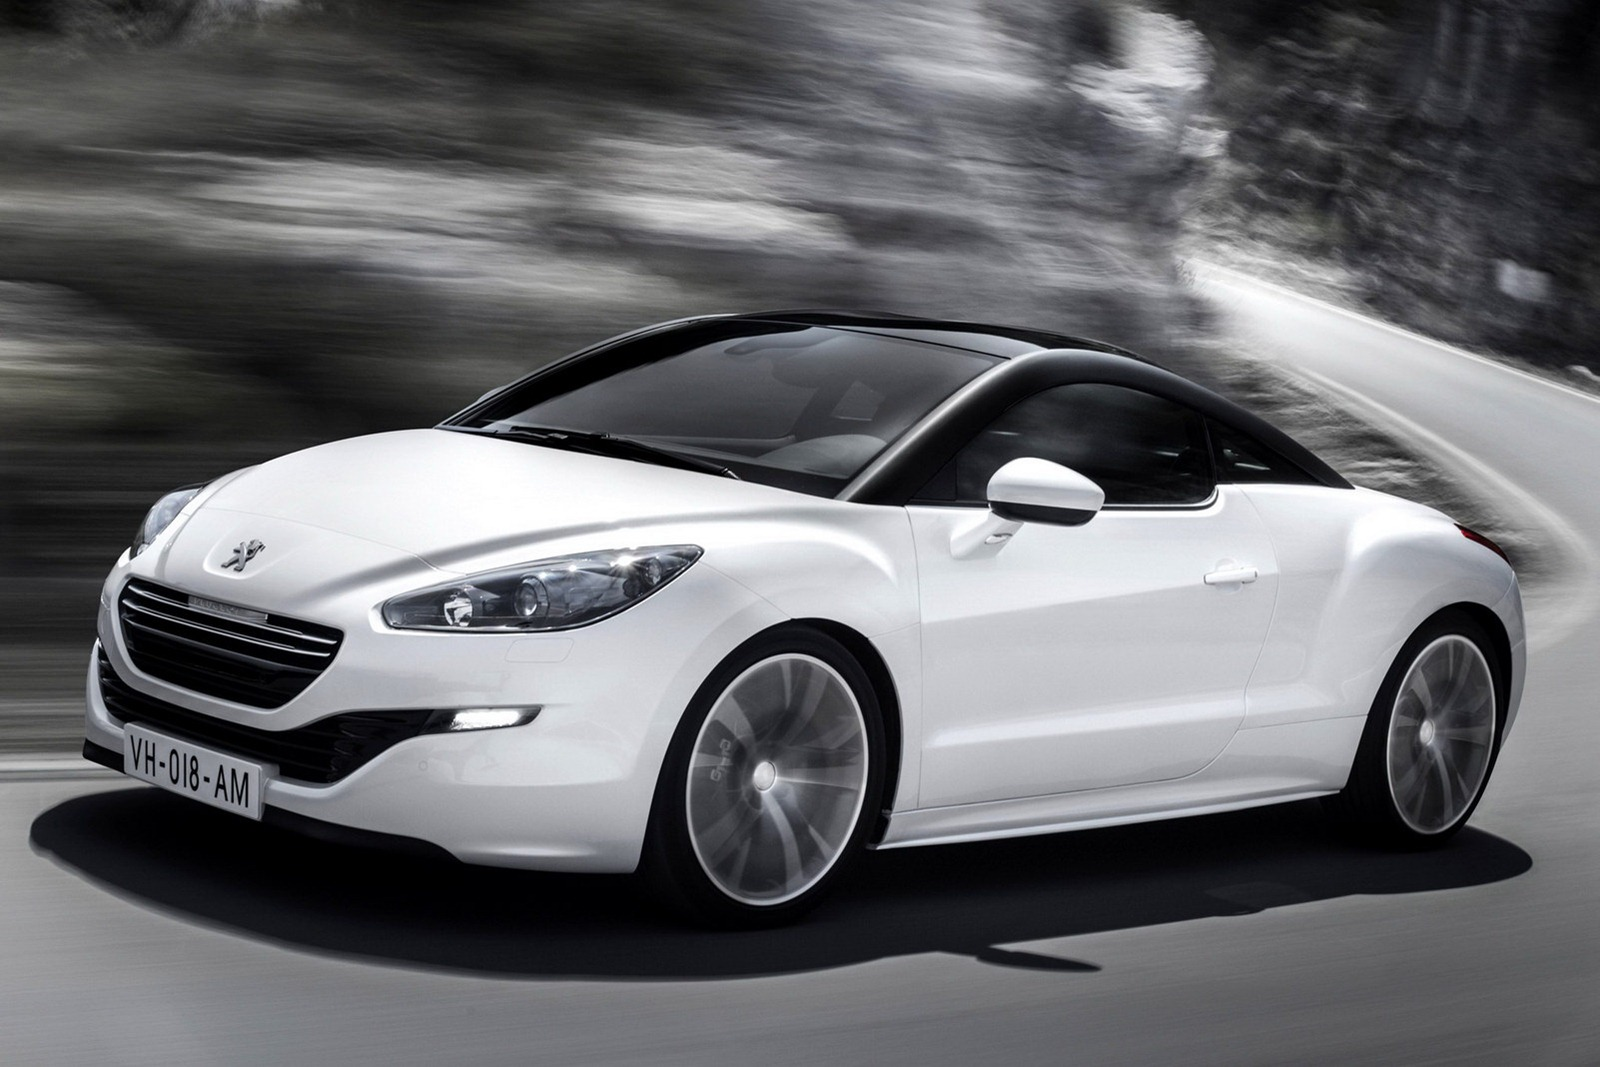 facelifted 2013 peugeot rcz coup headed for paris motor show. Black Bedroom Furniture Sets. Home Design Ideas